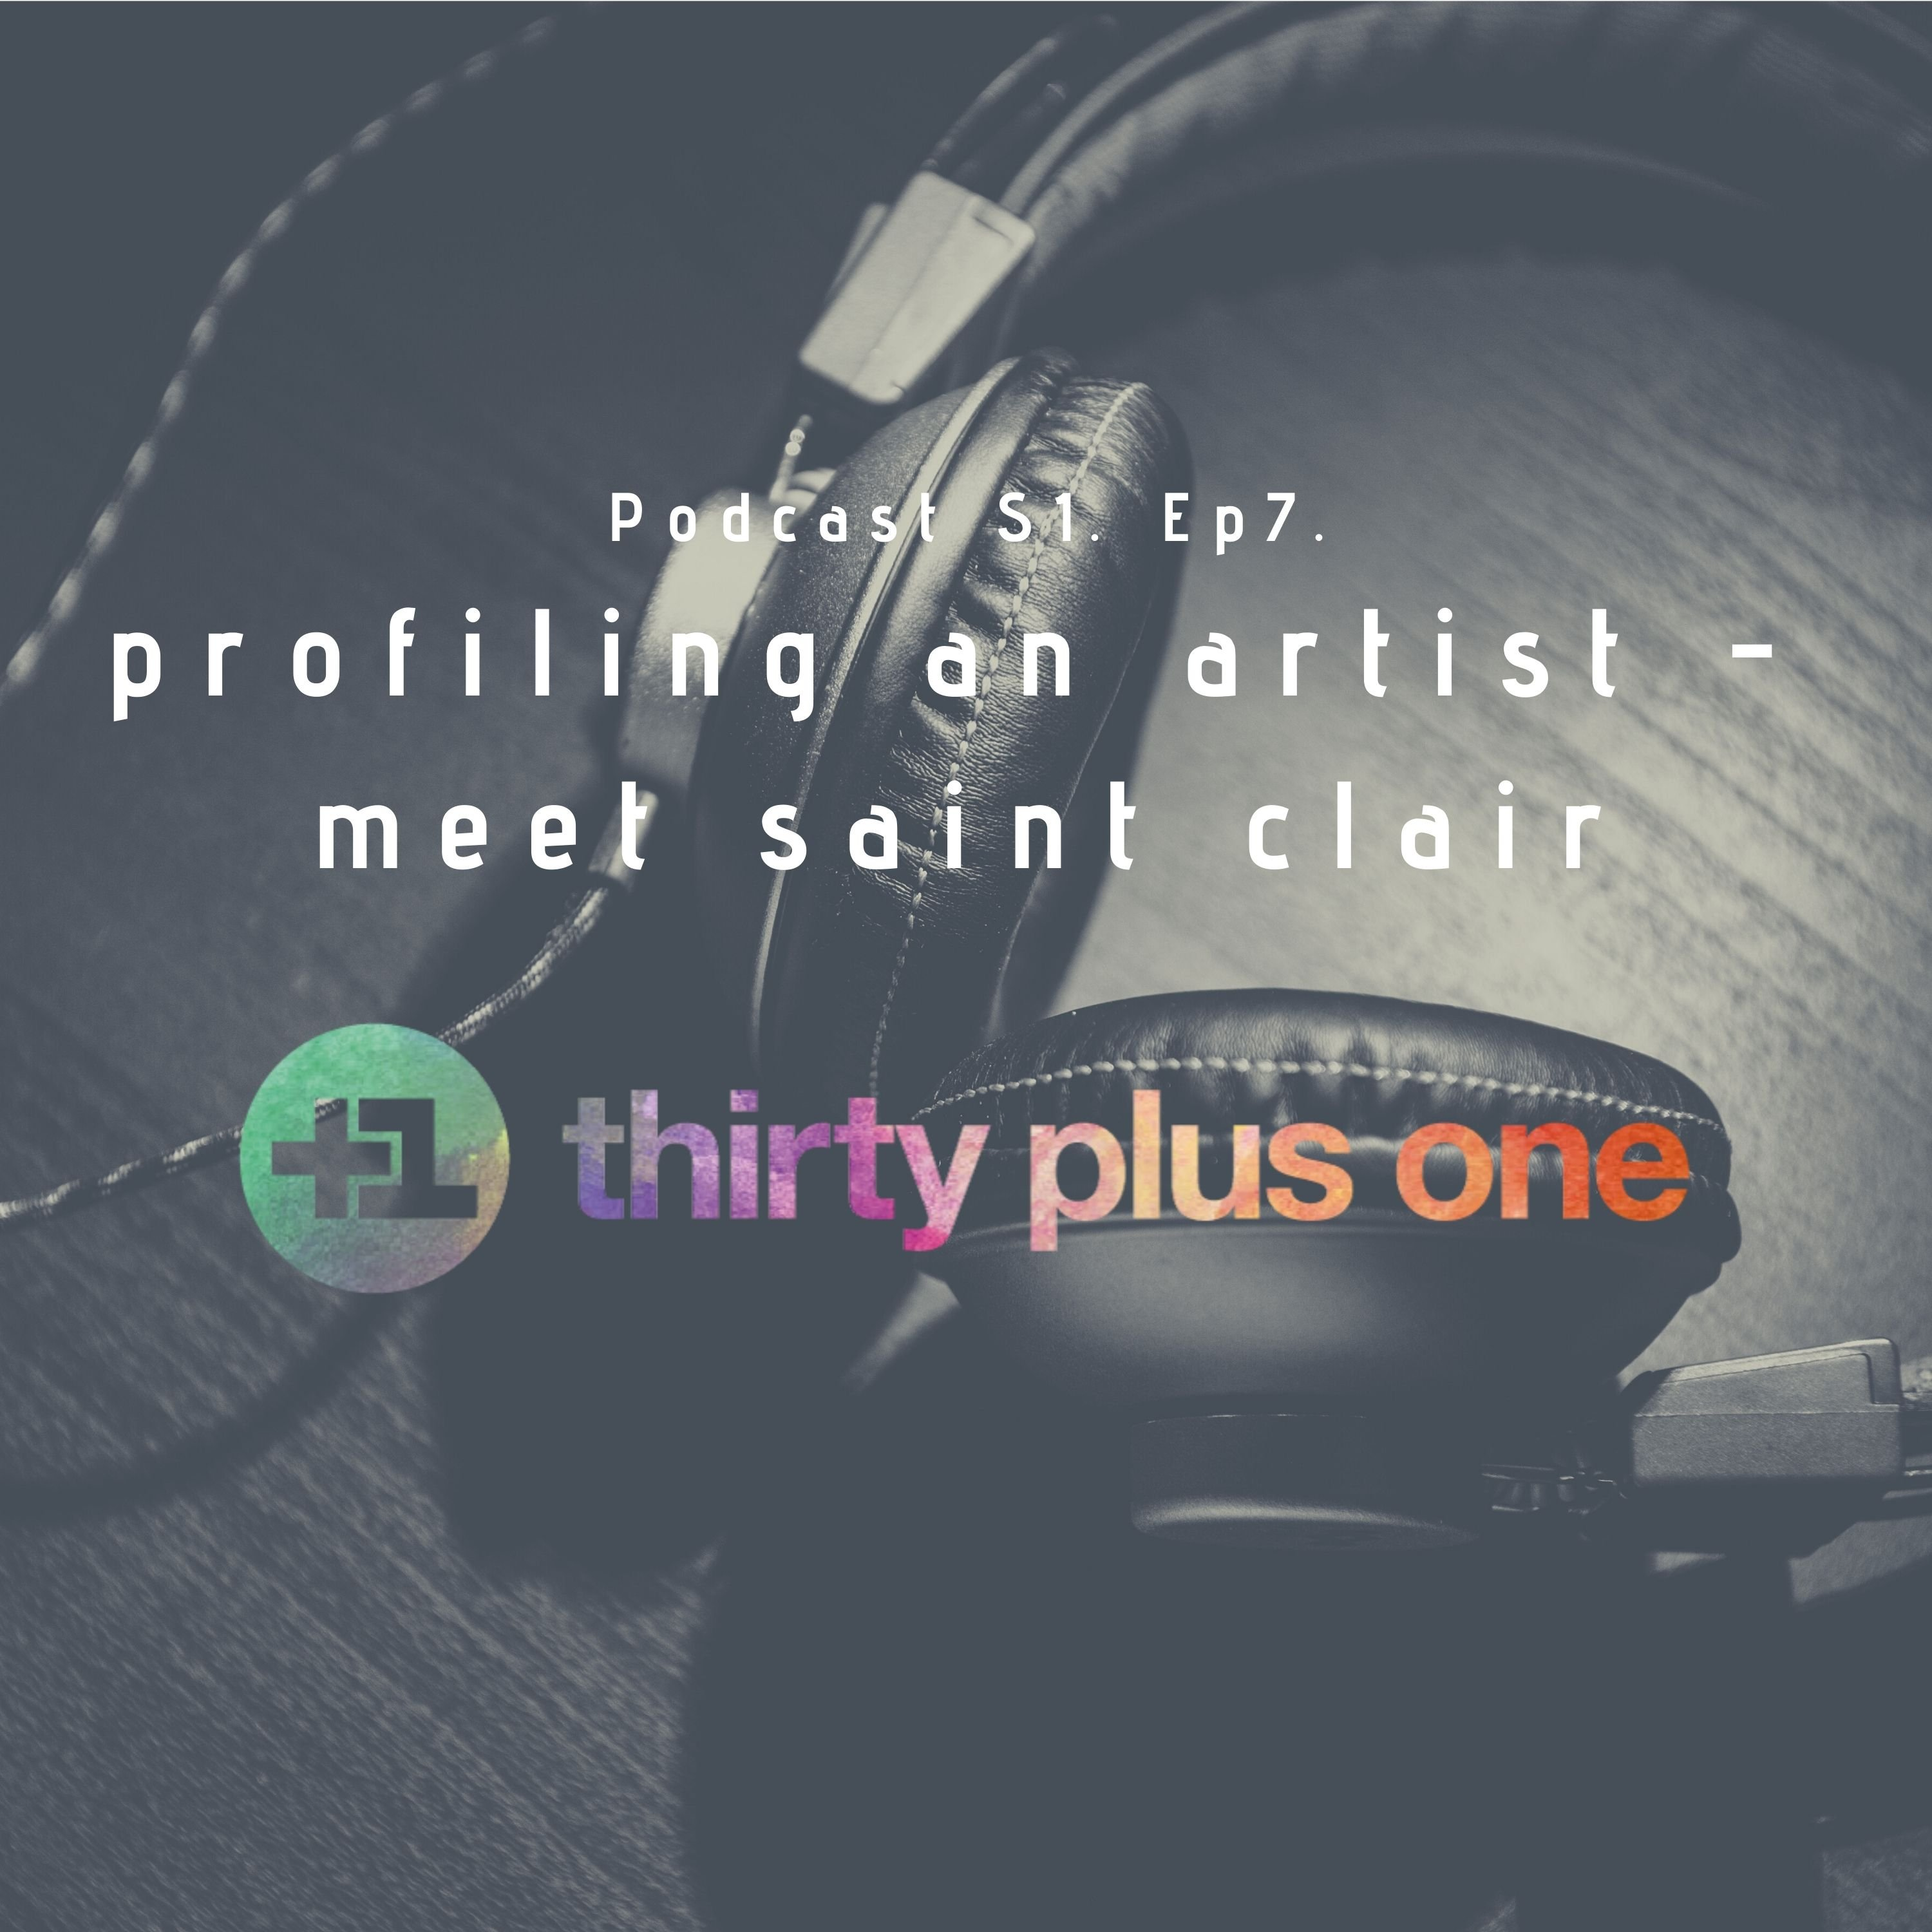 PODCAST: Ep7. S1. profiling an artist - meet Saint Clair